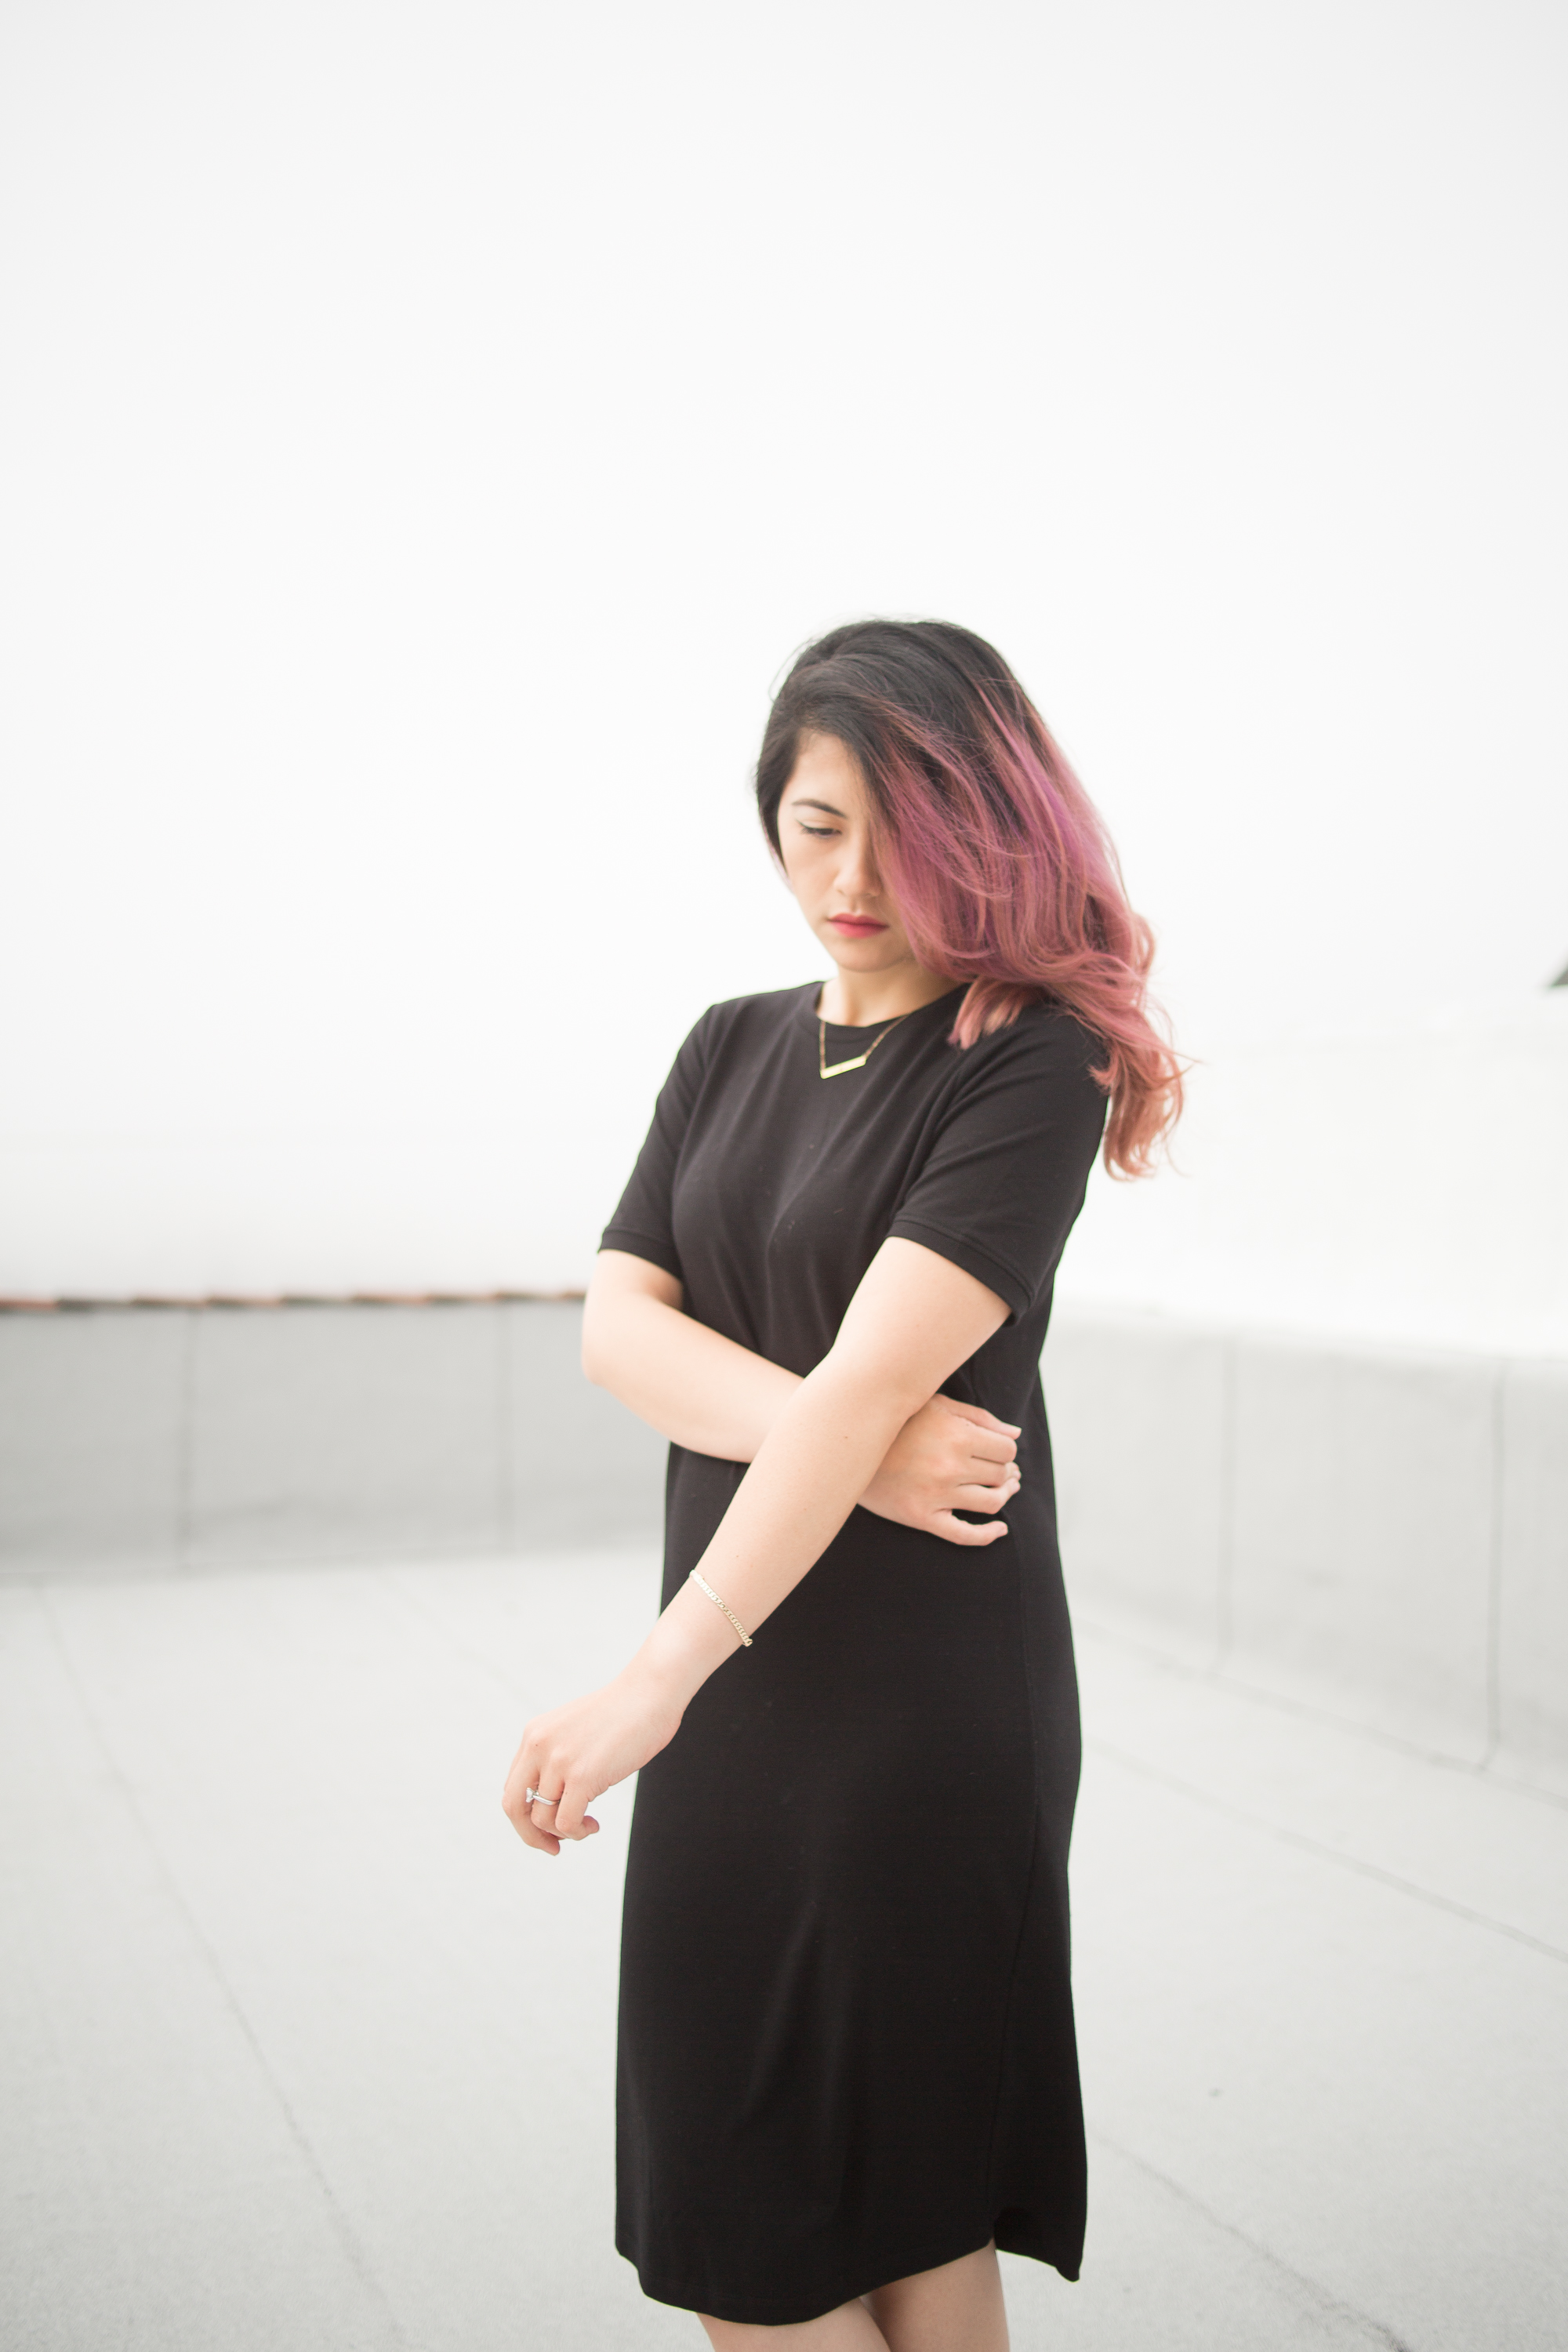 melissademata.com | Pink Purple Ombre Hair